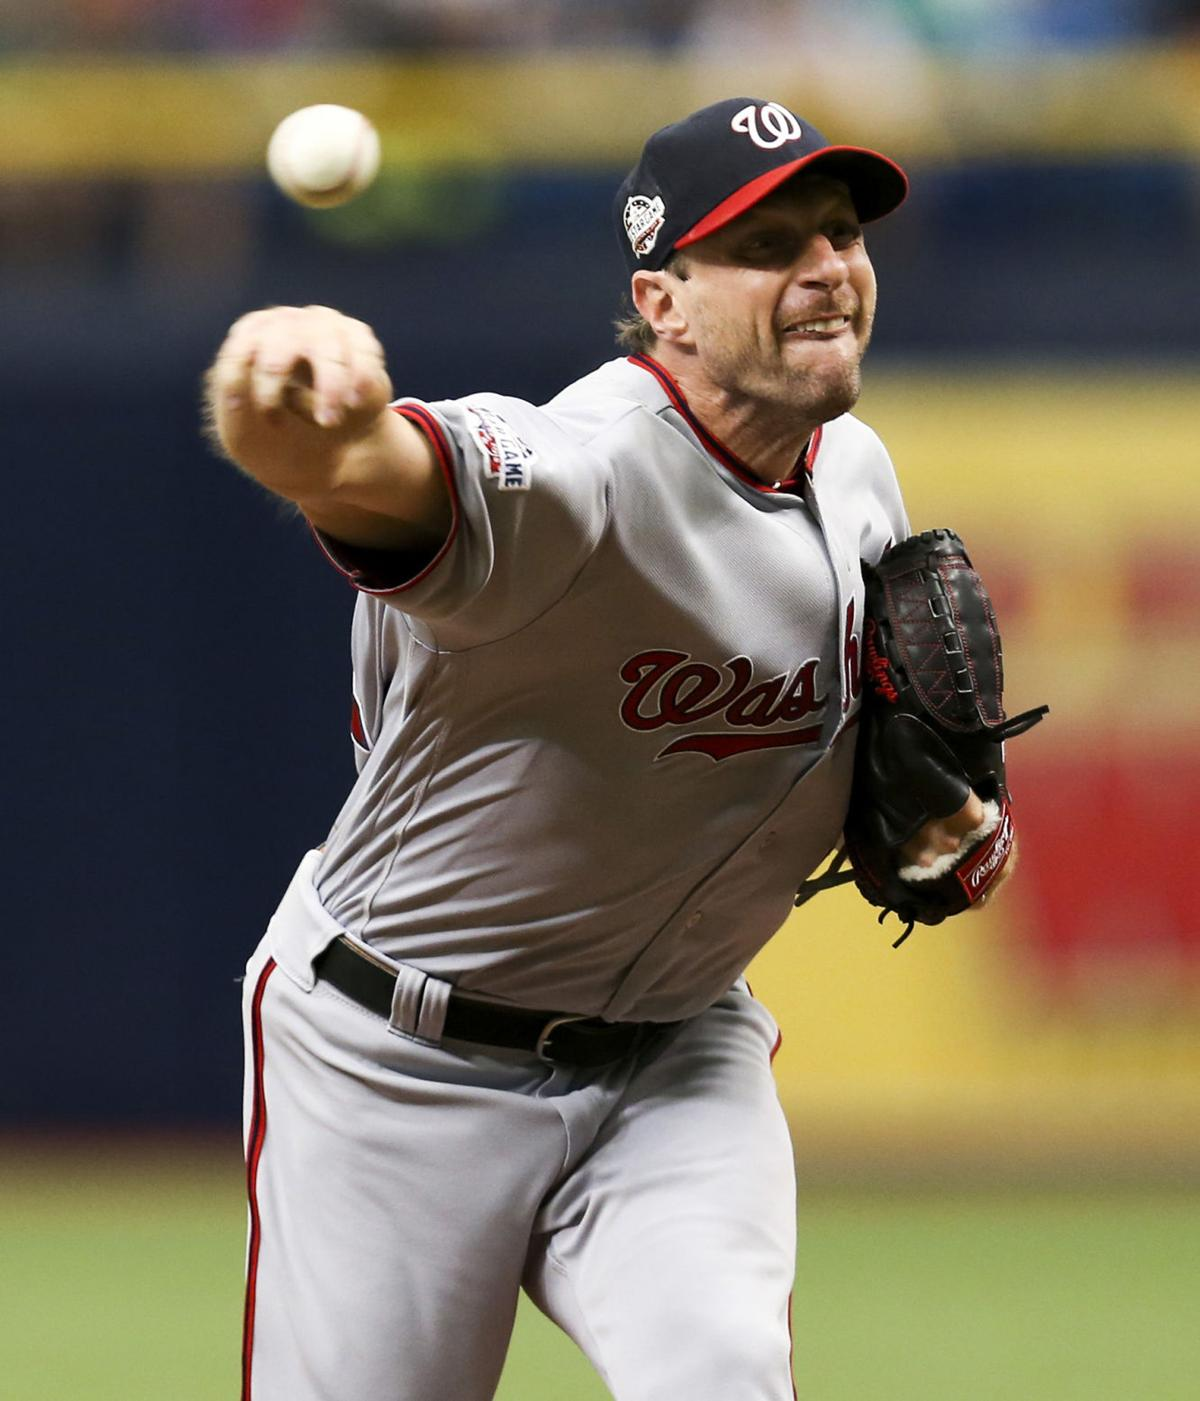 Washington Nationals pitcher Max Scherzer throws against the Tampa Bay Rays on June 26, 2018, in St. Petersburg, Fla.